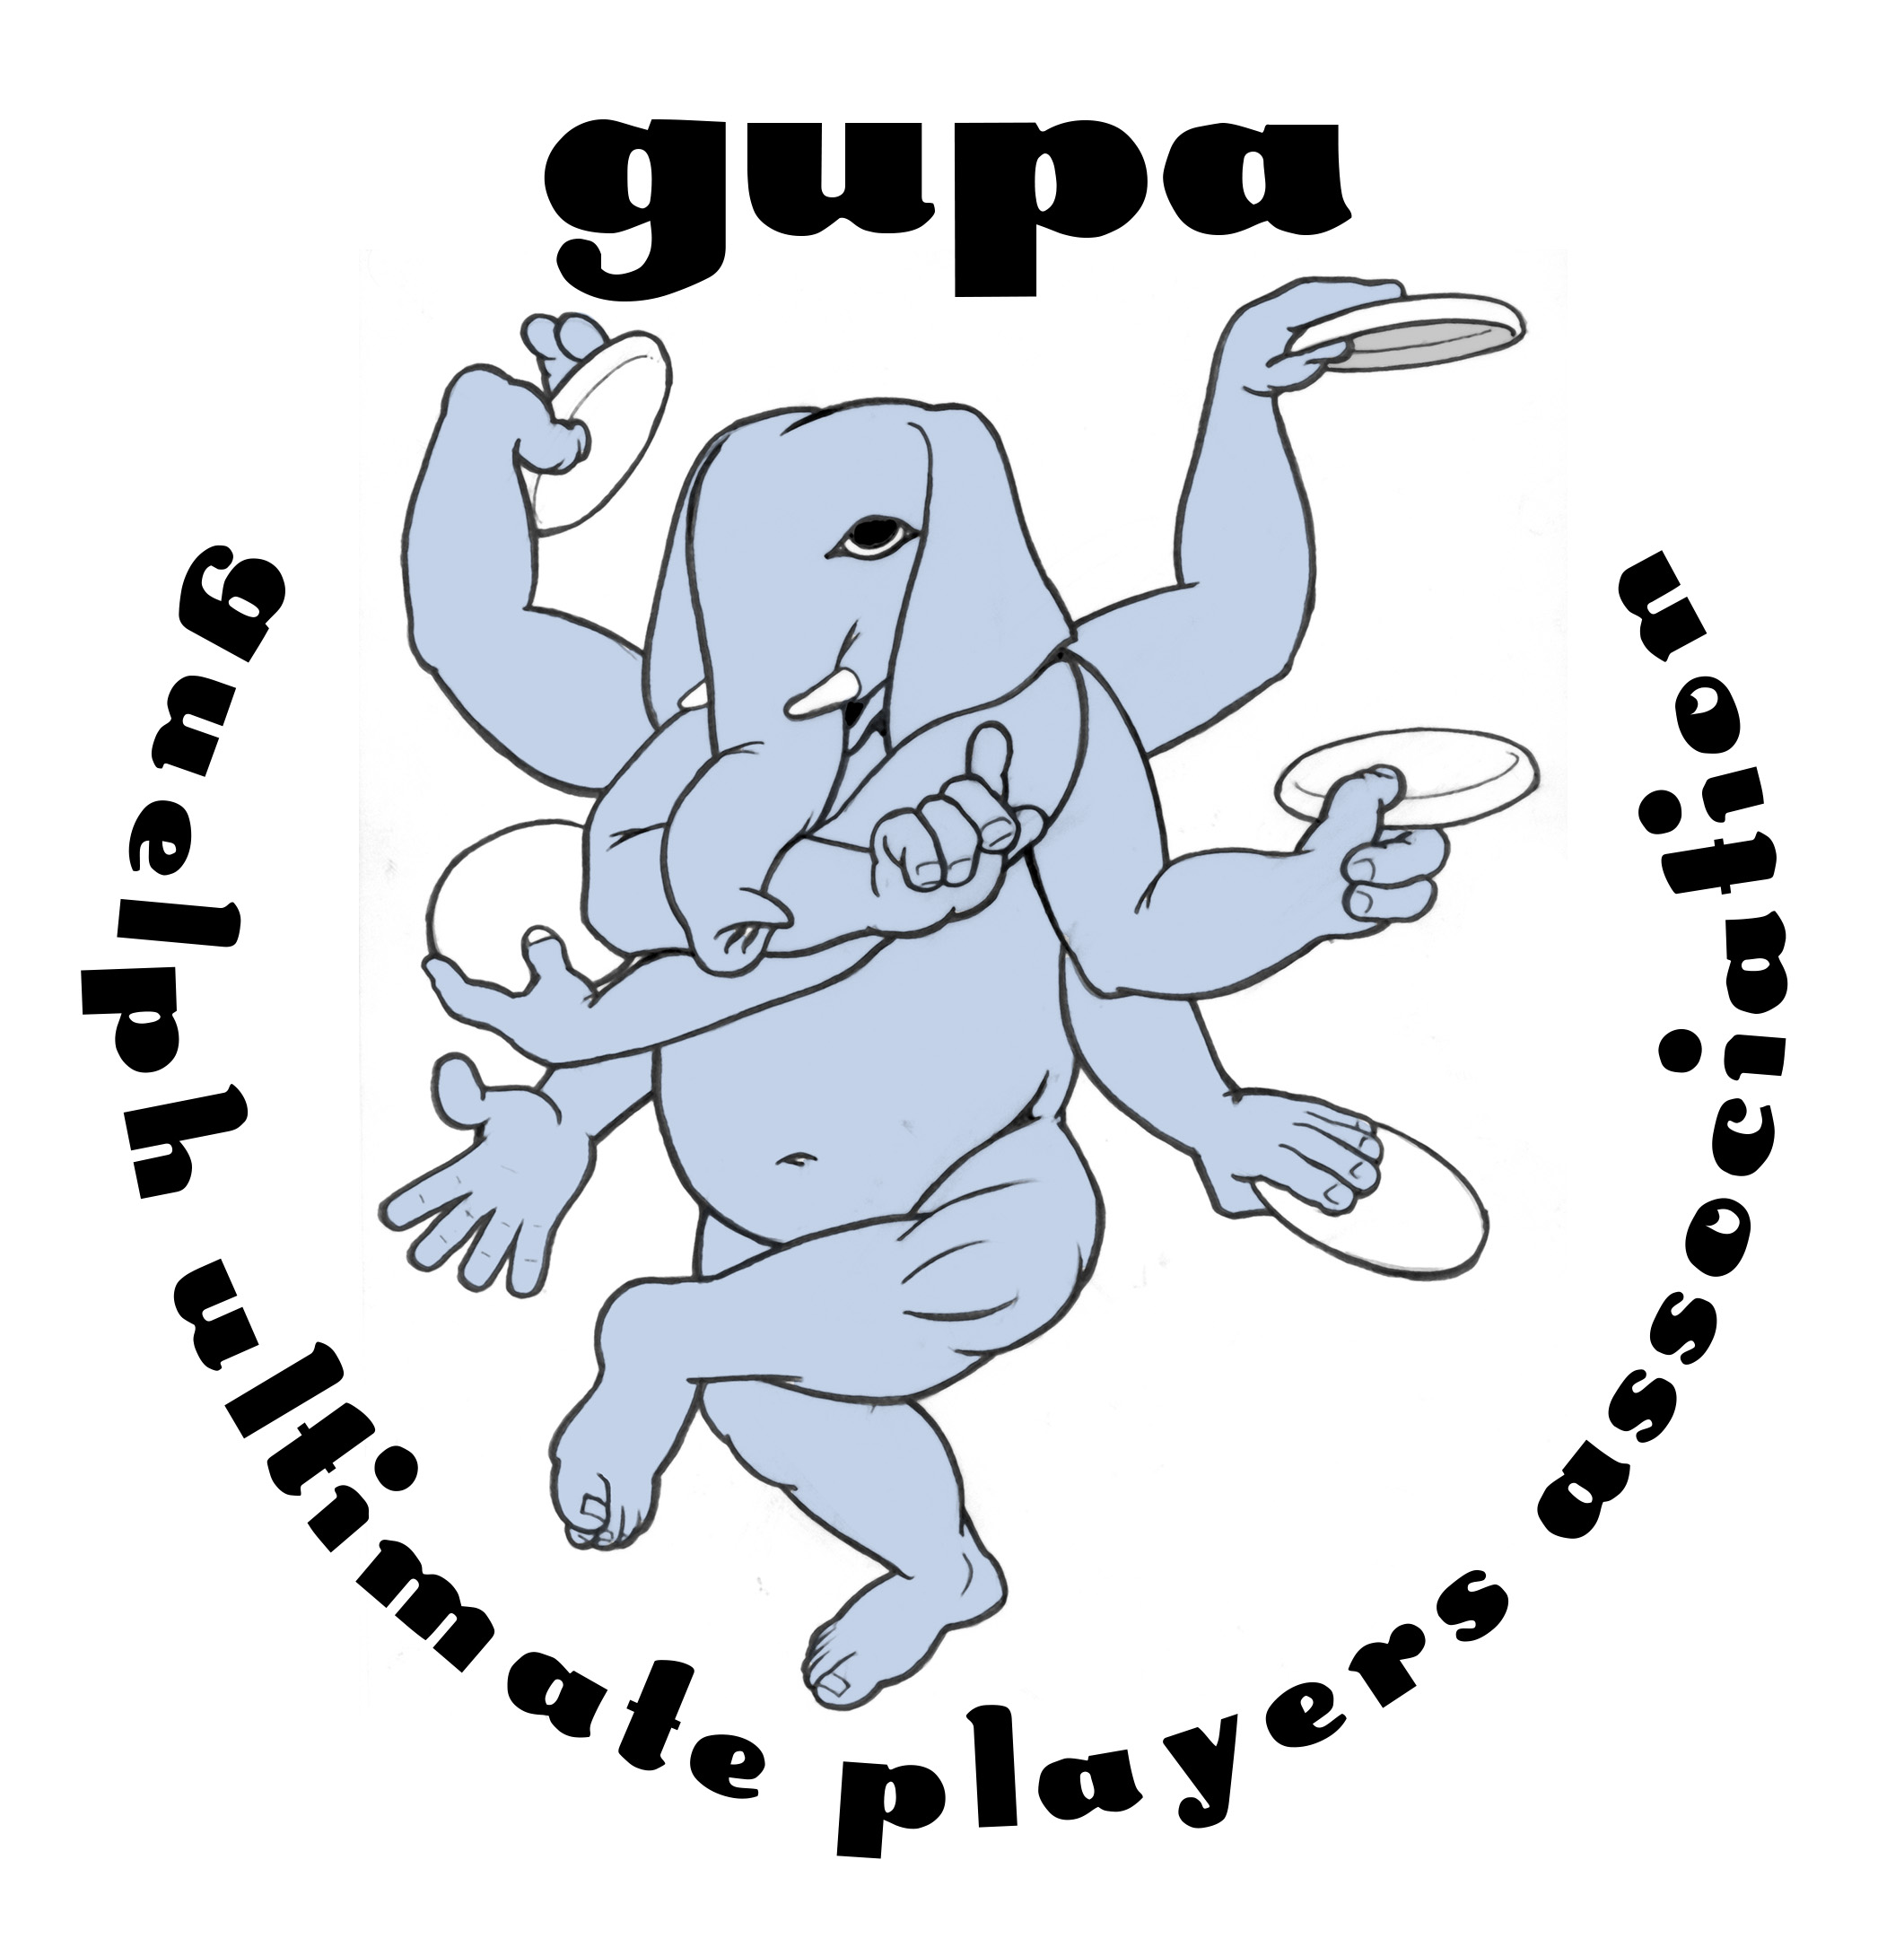 First GUPA logo. Rejected for being blasphemous. So glad we didn't use this.